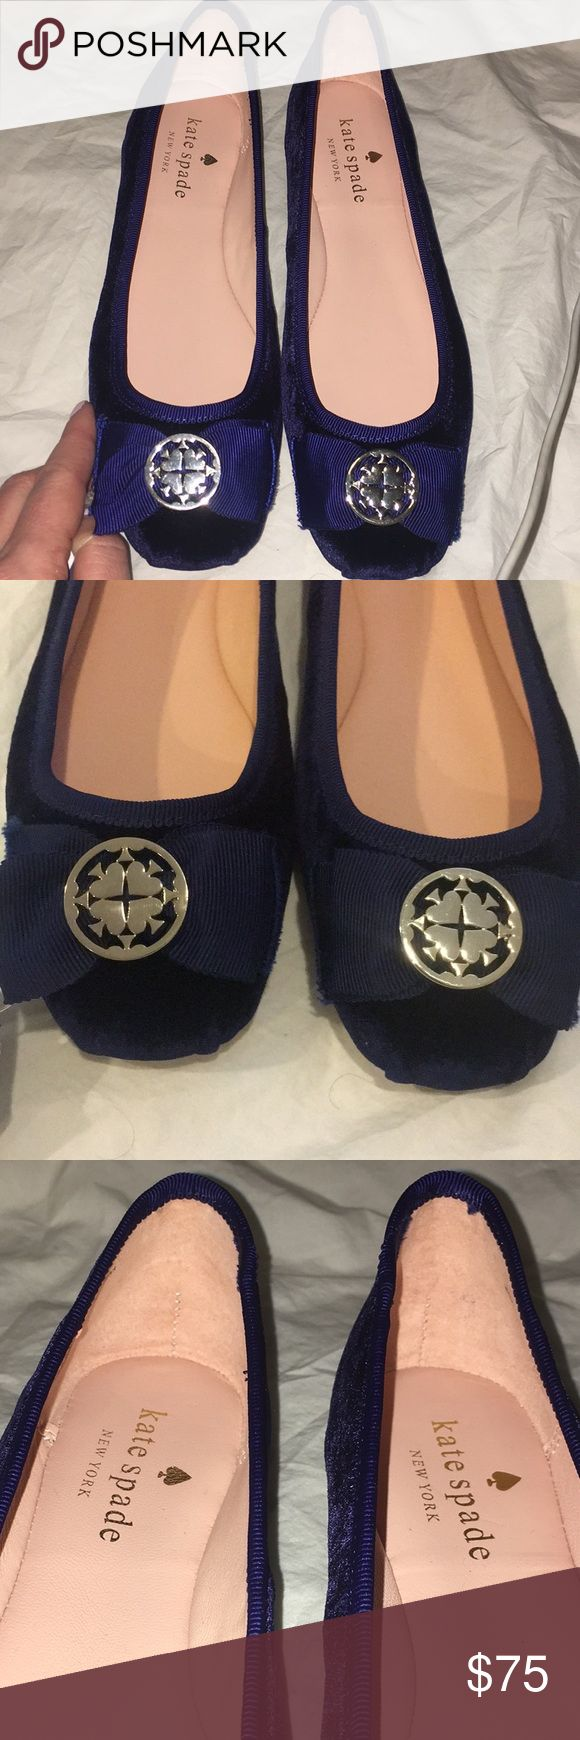 NWOT Kate Spade Velvet ballerina flats size 6. NWOT Kate Spade Women's velvet Ballerina flats- blue. Brand new, never worn, runs true to size! Does not come with box. kate spade Shoes Flats & Loafers